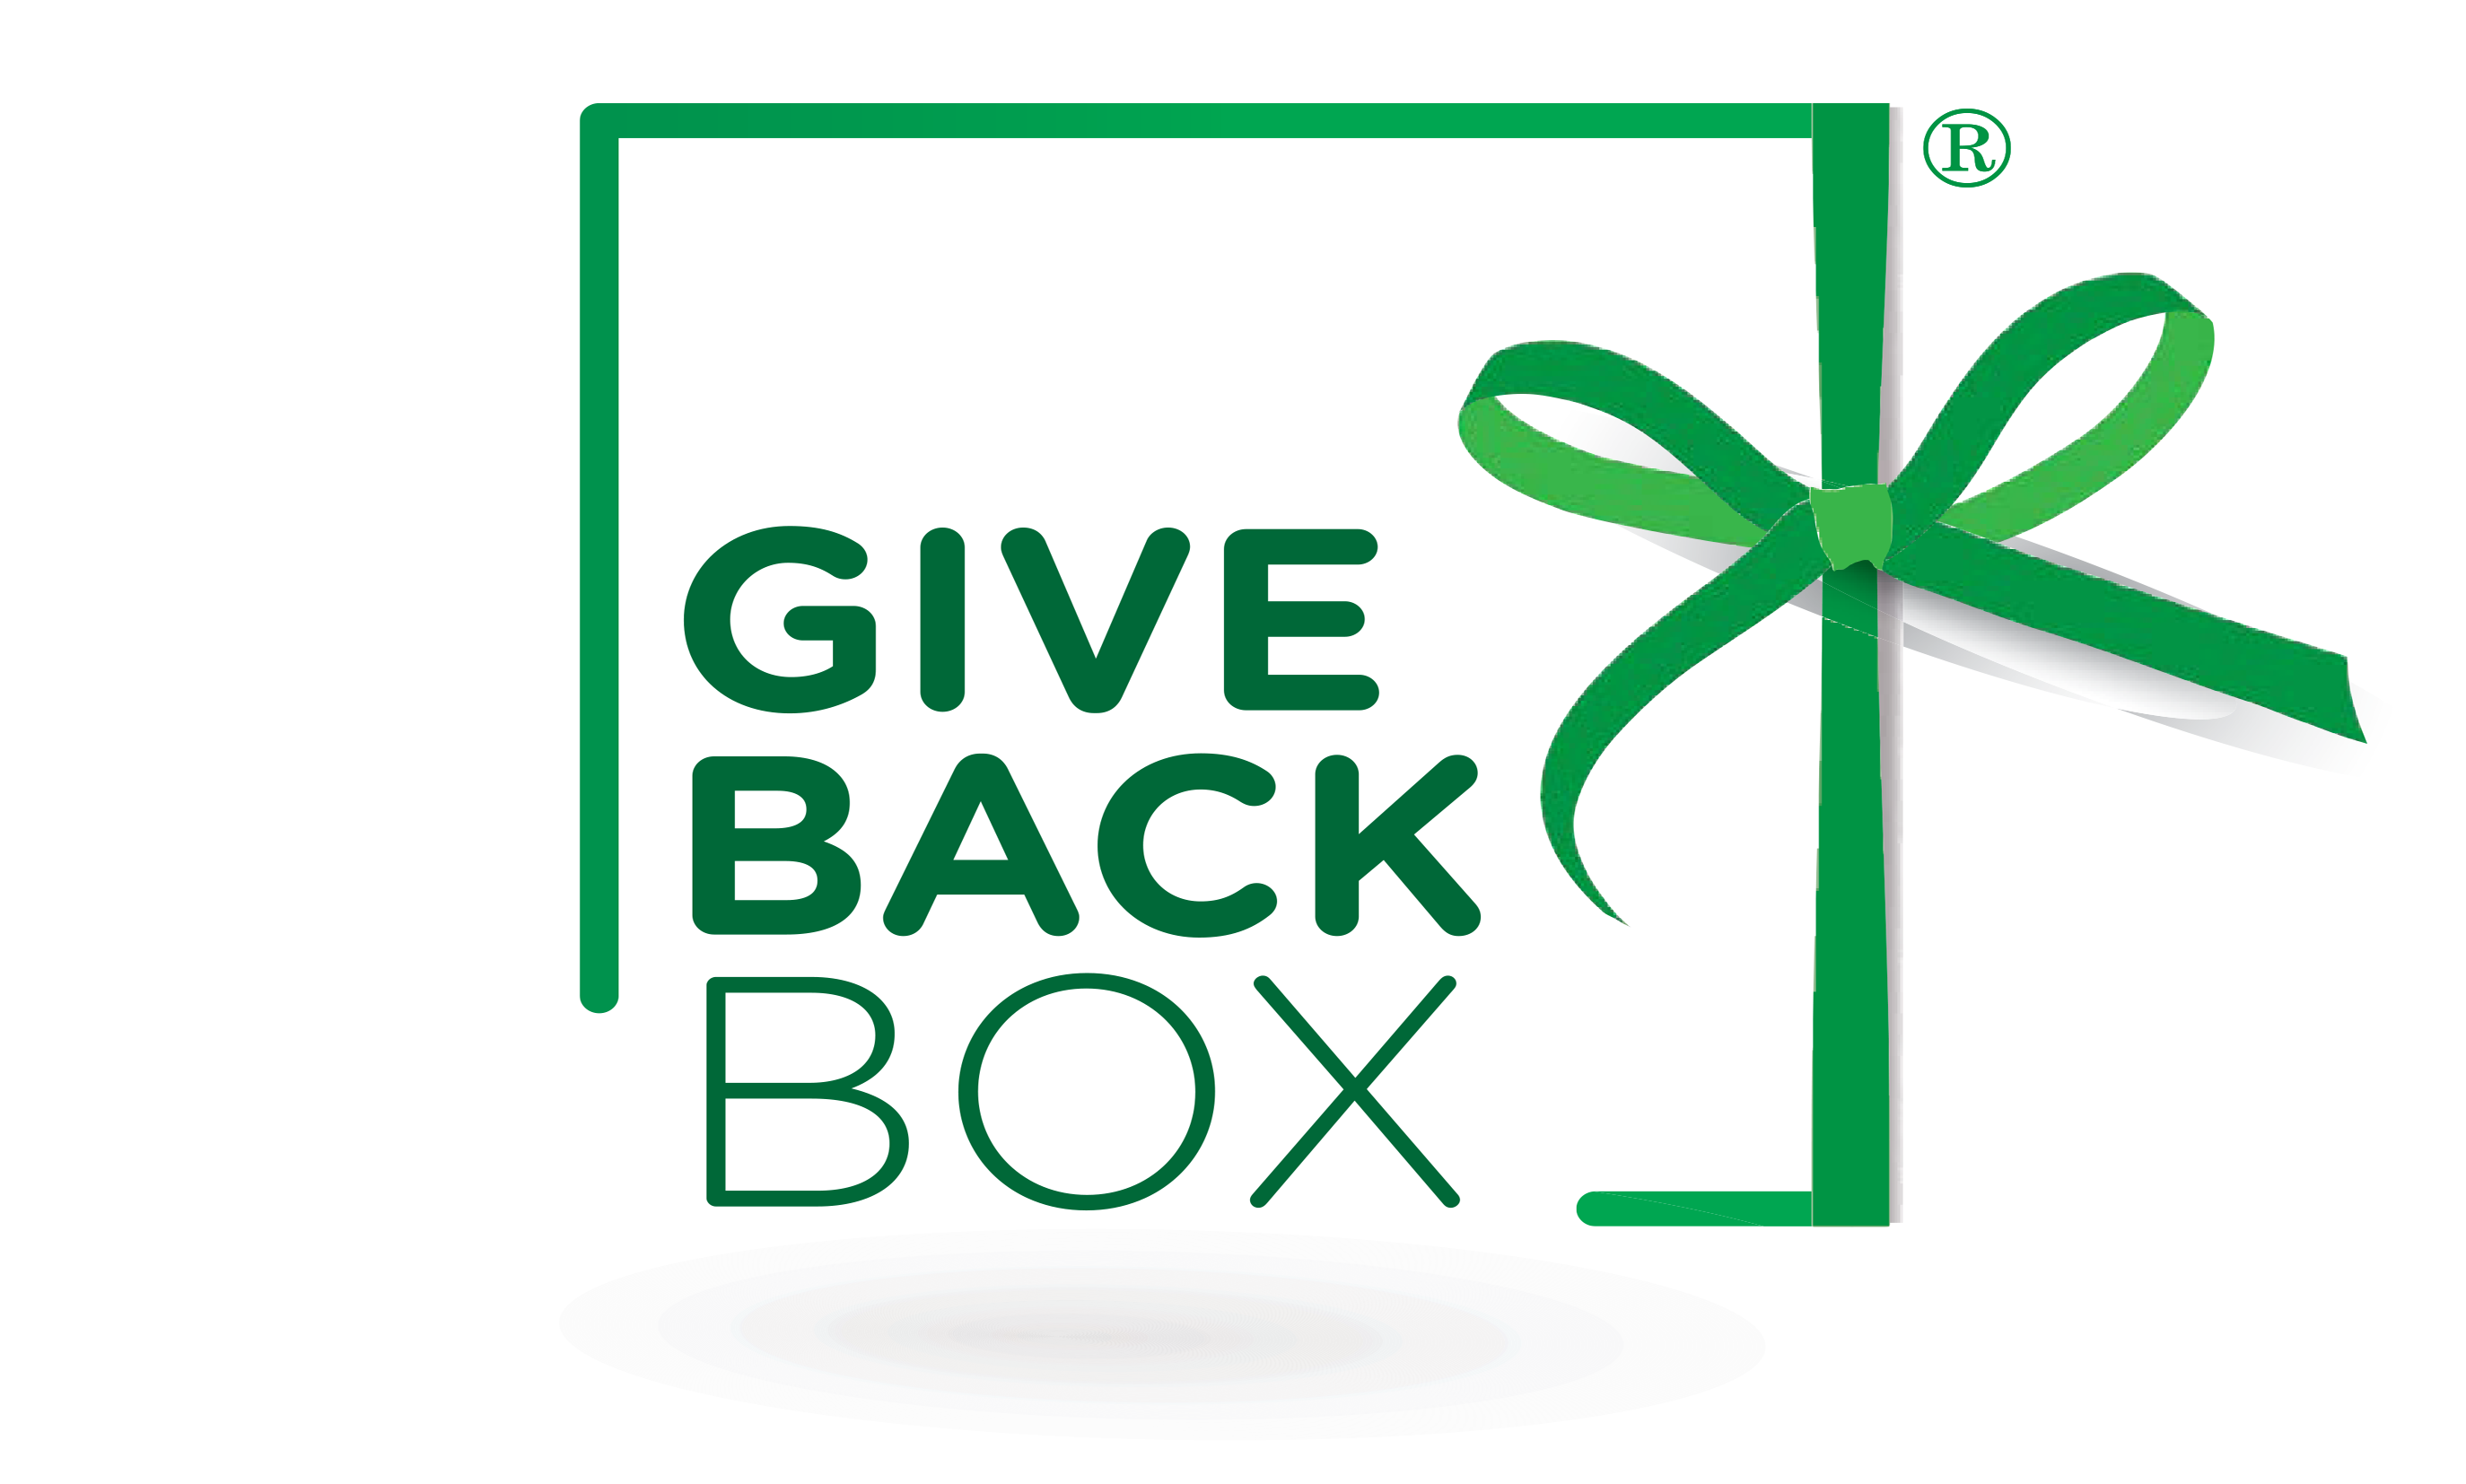 The Give Back Box Program